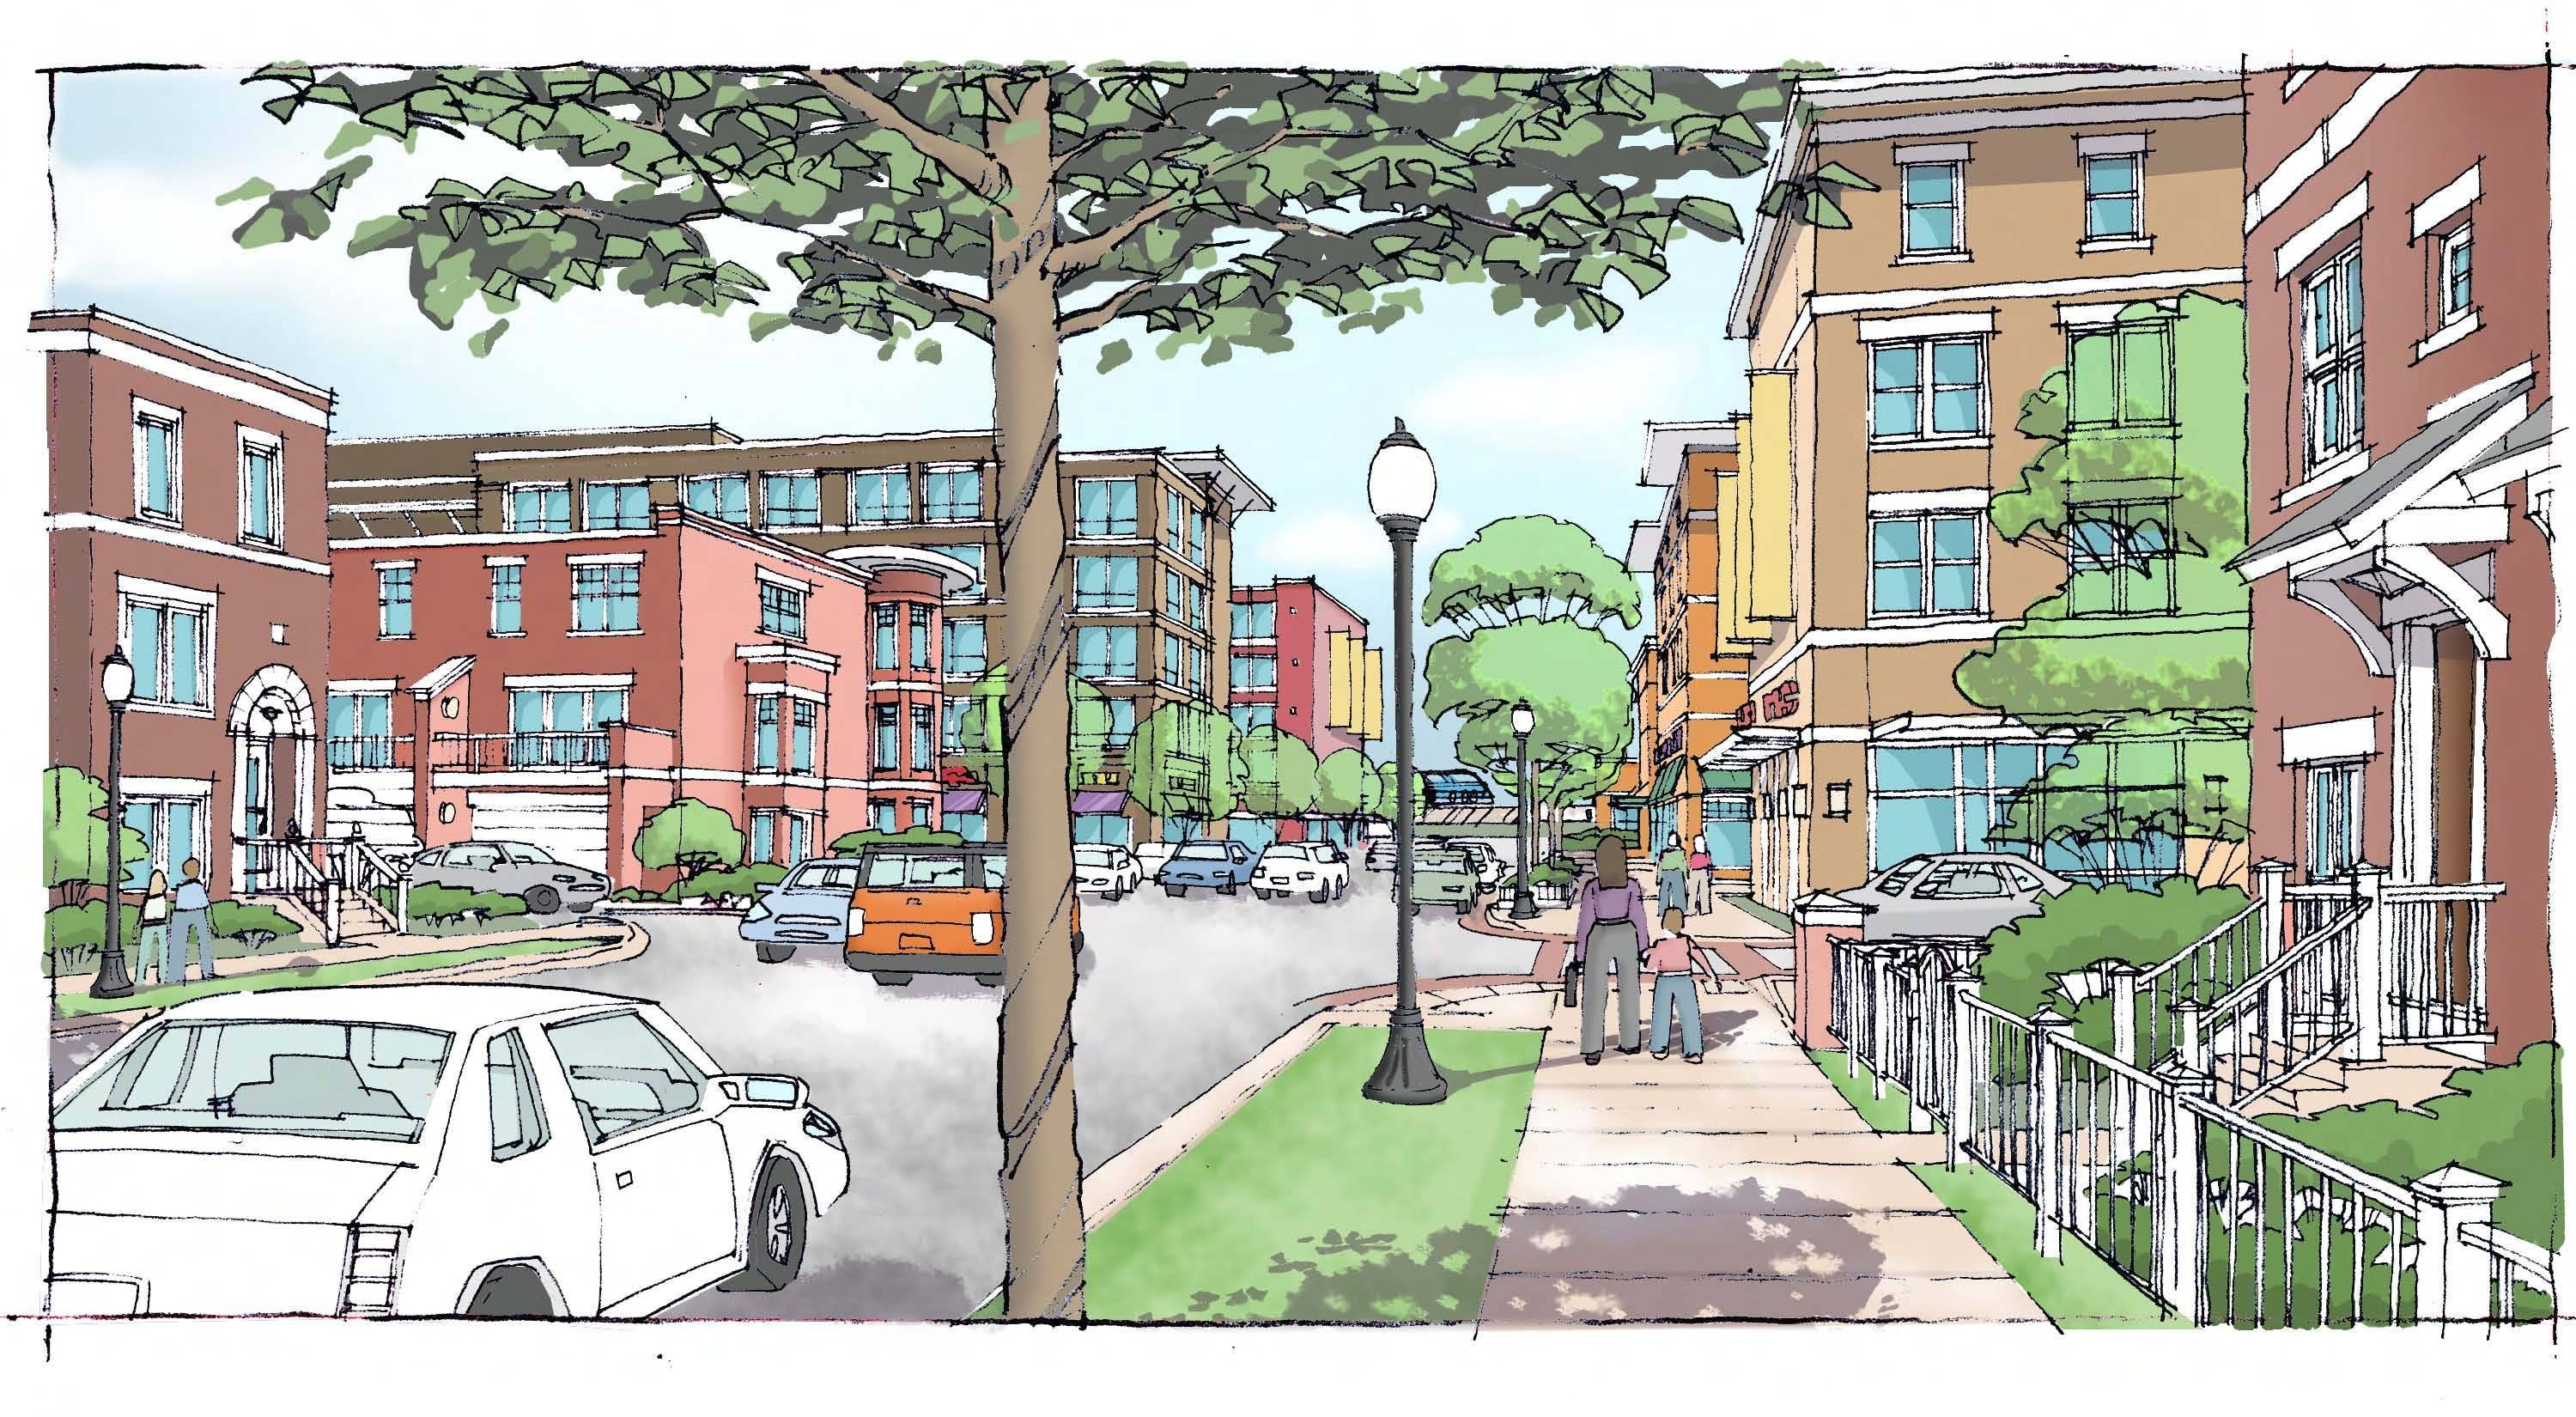 Renderings of proposed redevelopment in the Hickory Kensington area in Arlington Heights.